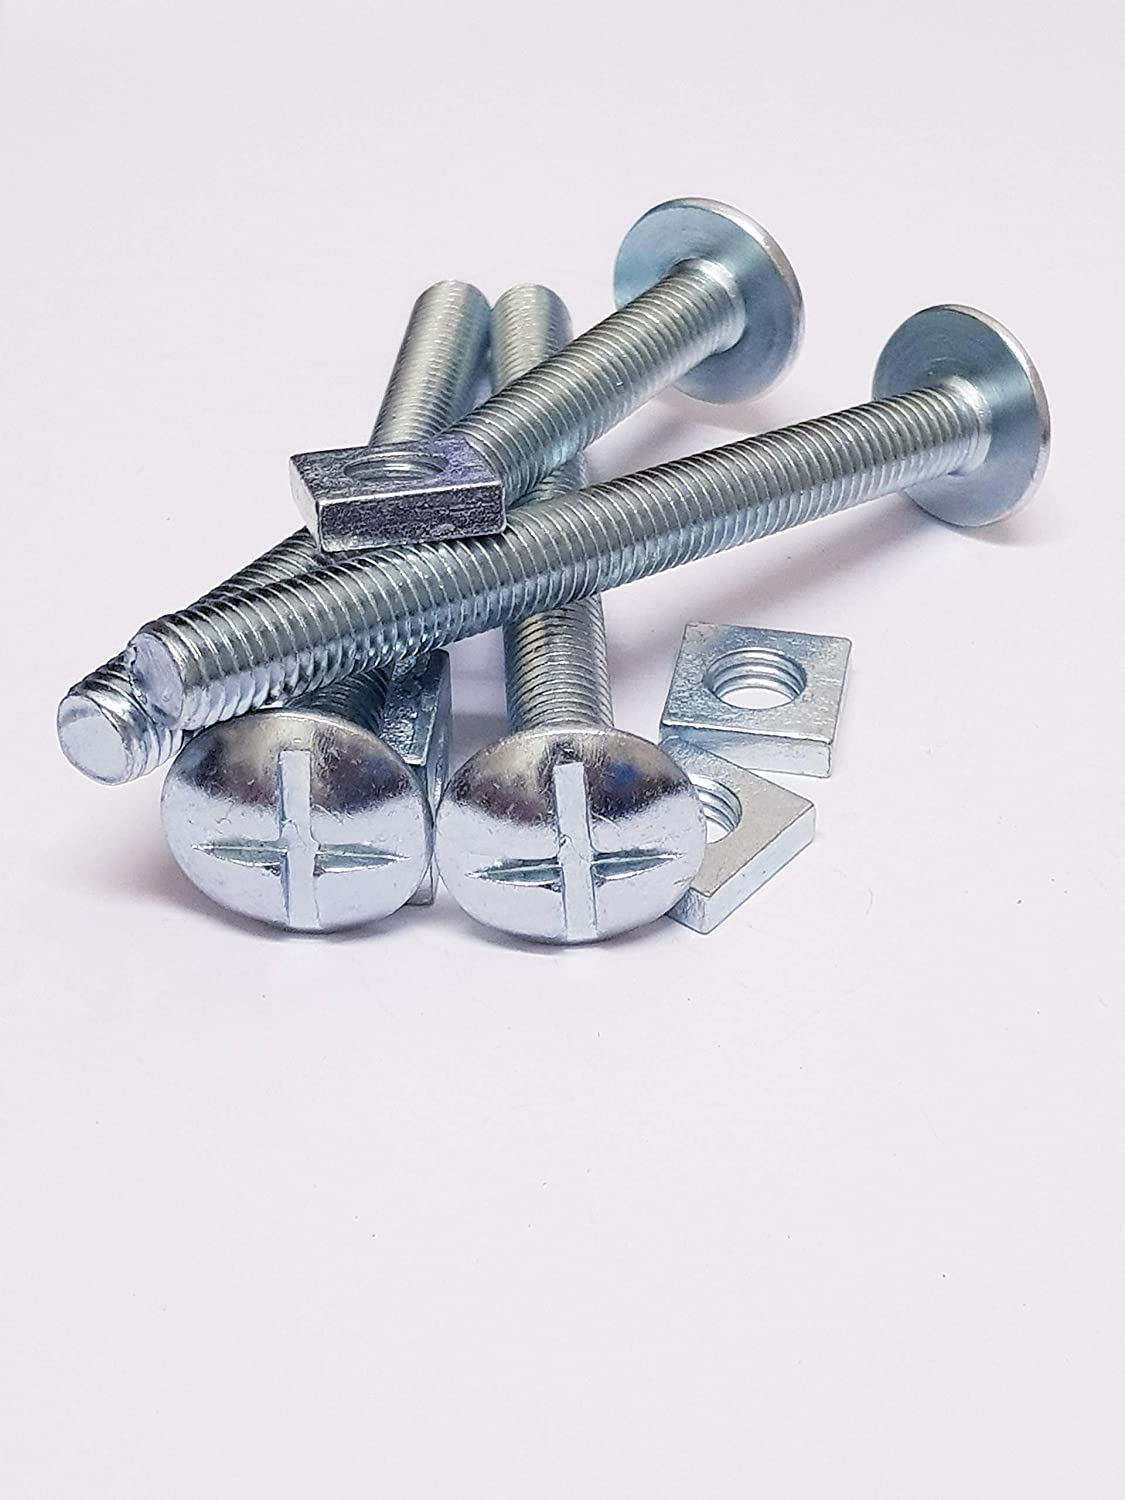 ZINC /& CLEAR M10 X 200mm MUSHROOM HEAD ROOFING BOLTS WITH SQUARE NUTS PACK OF 5